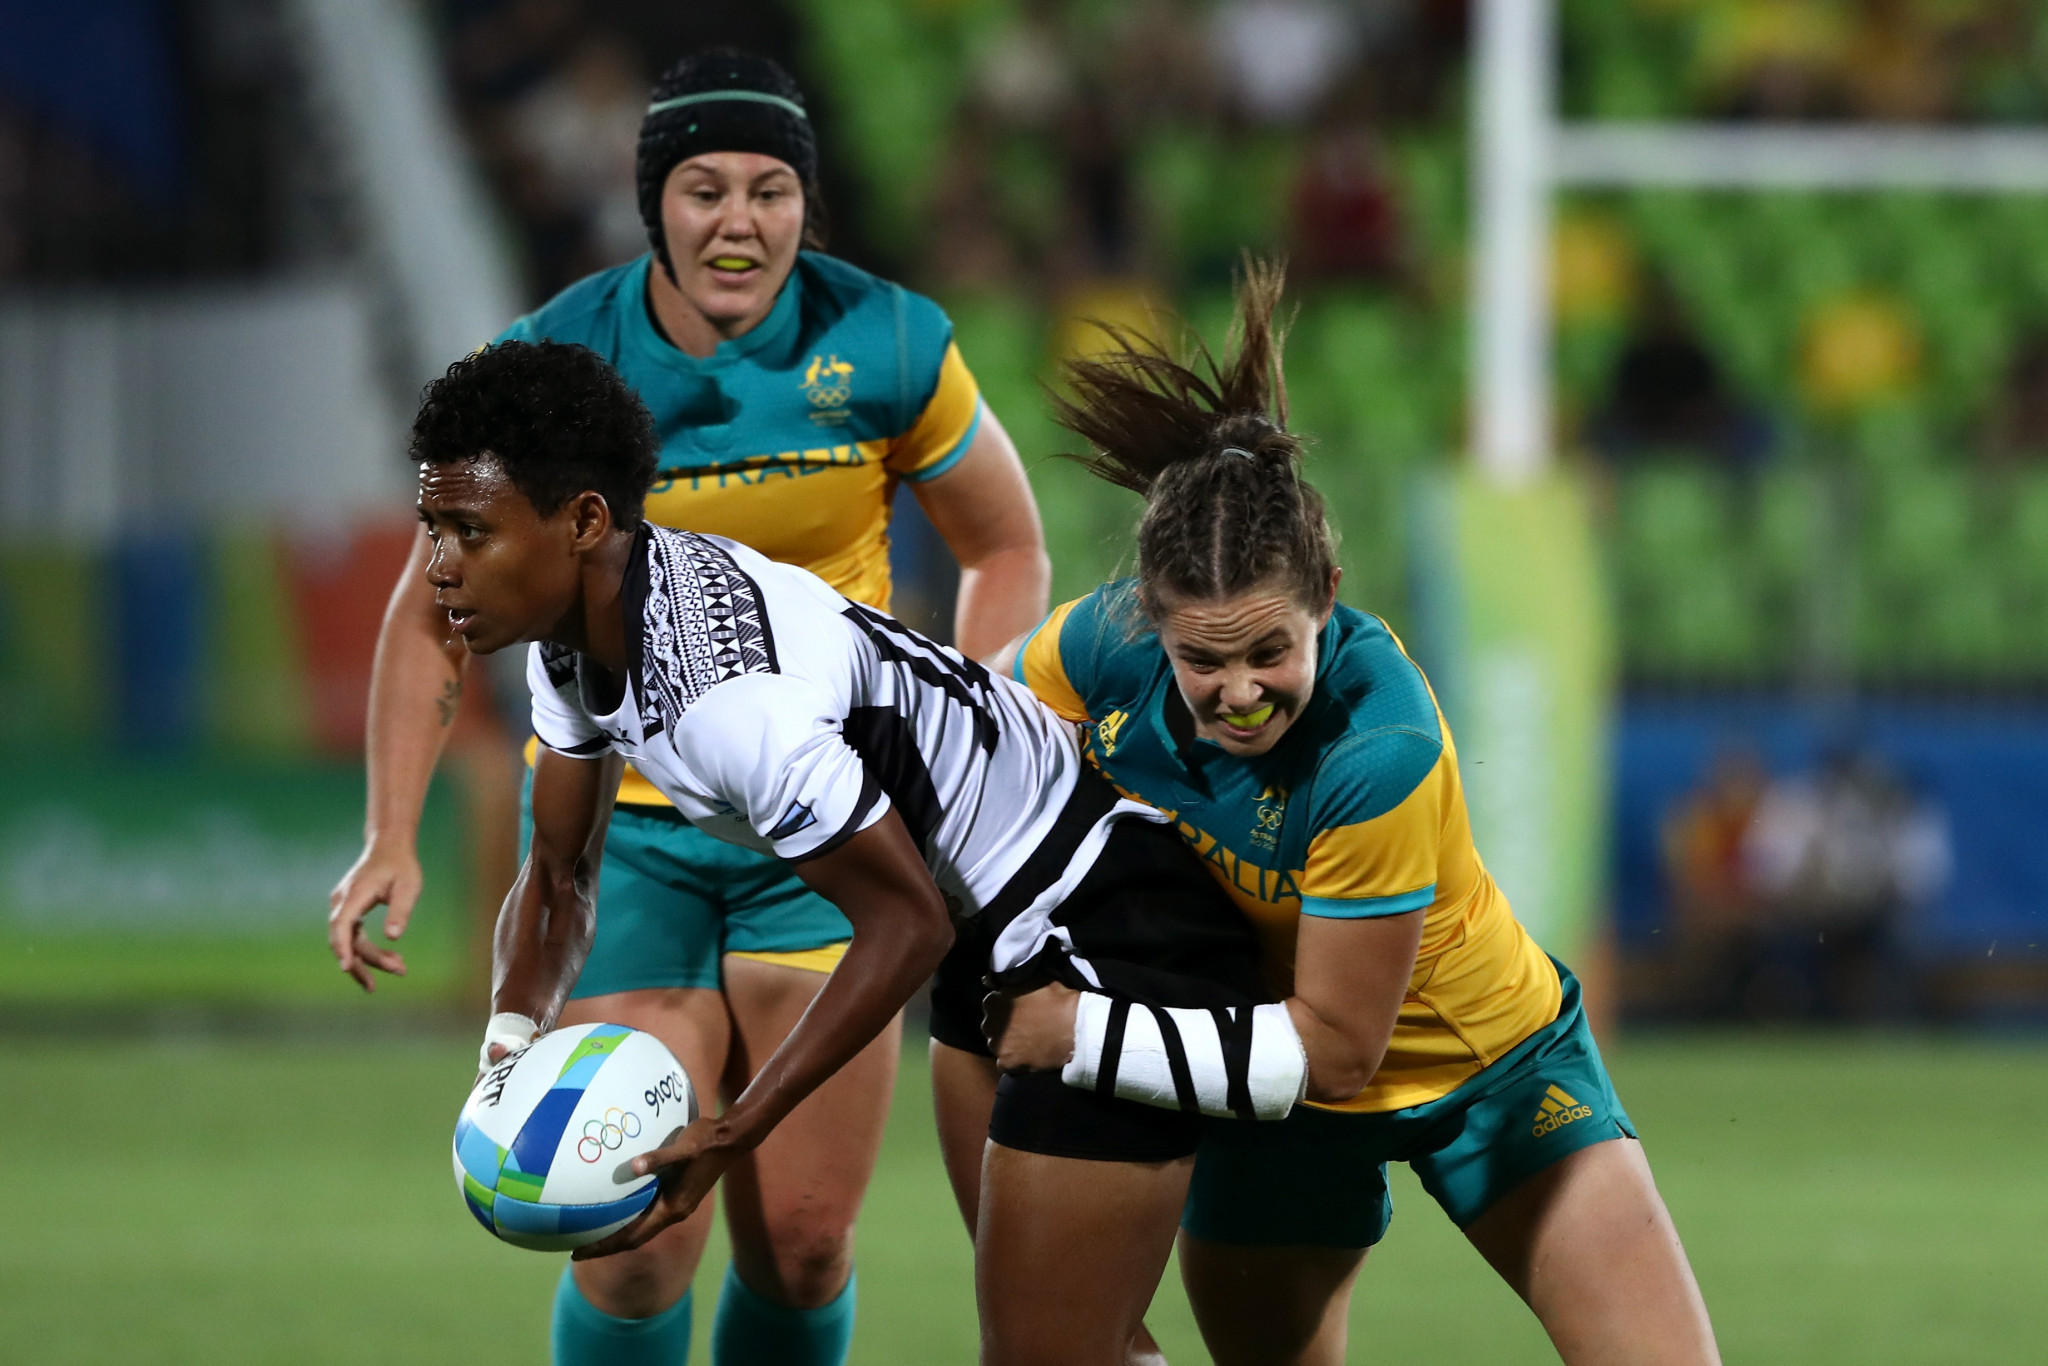 Viniana Riwai played for Fiji's women's rugby sevens team at Rio 2016 ©Getty Images